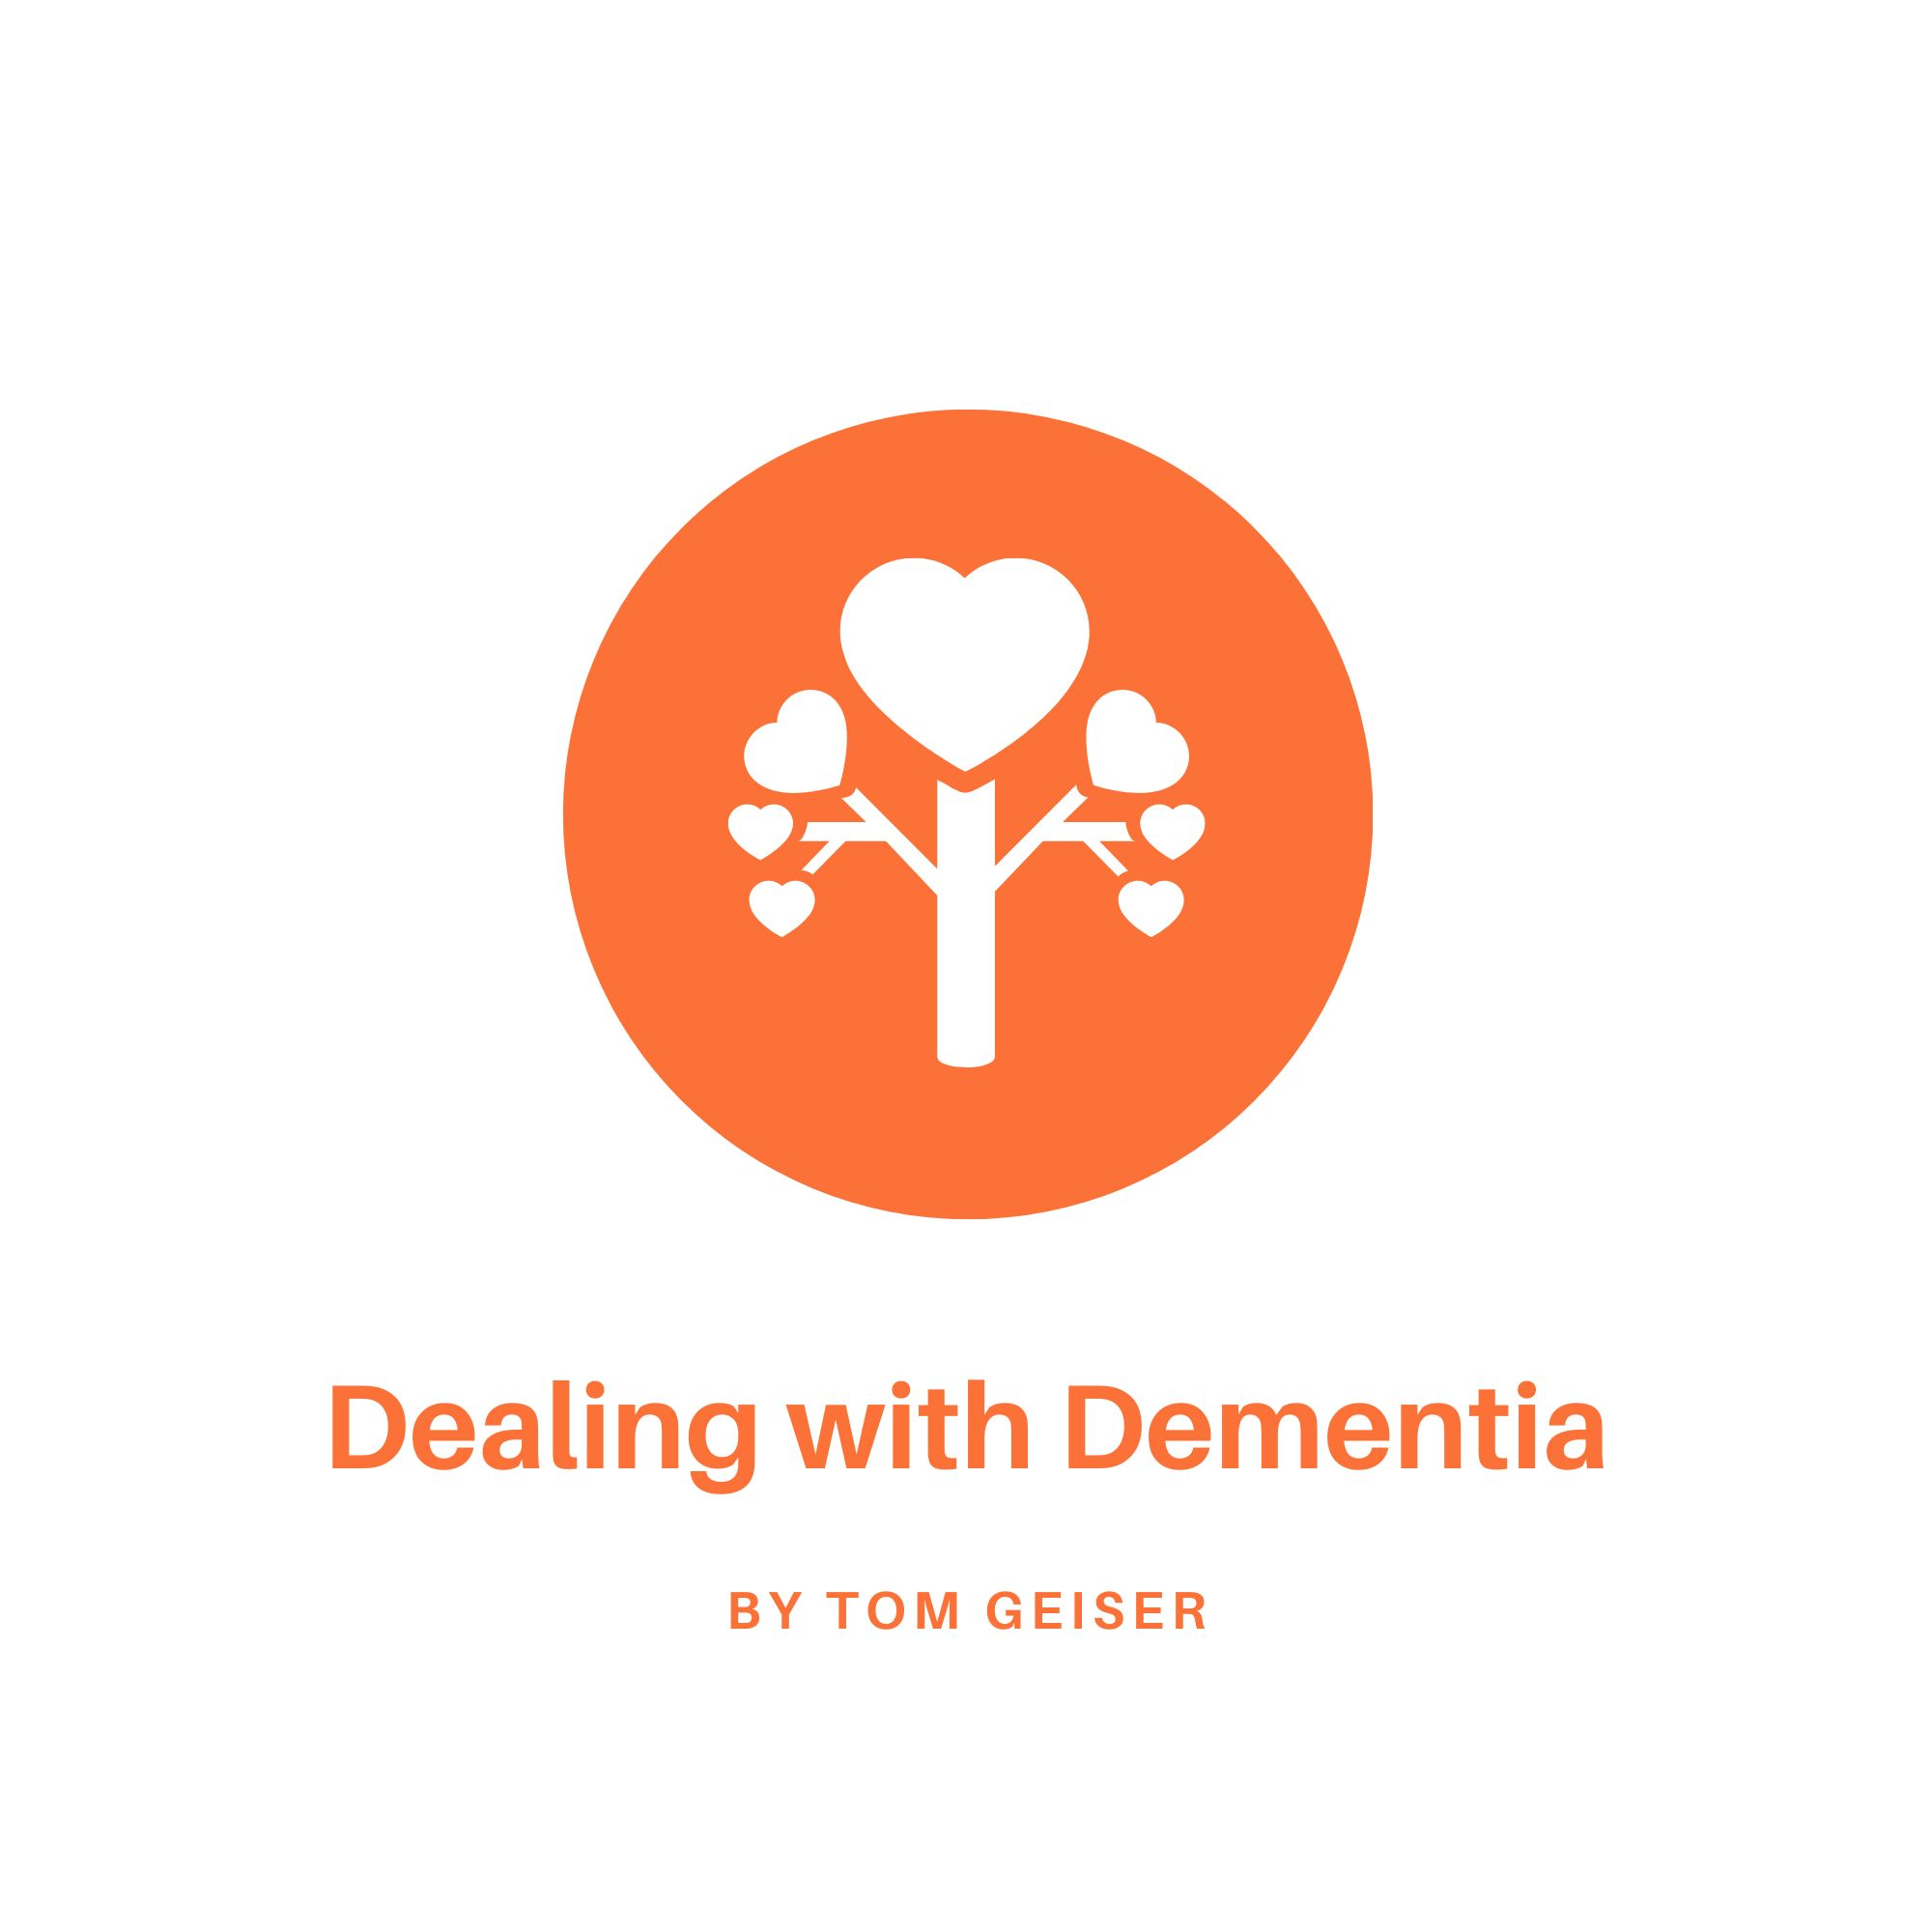 Dealing with Dementia